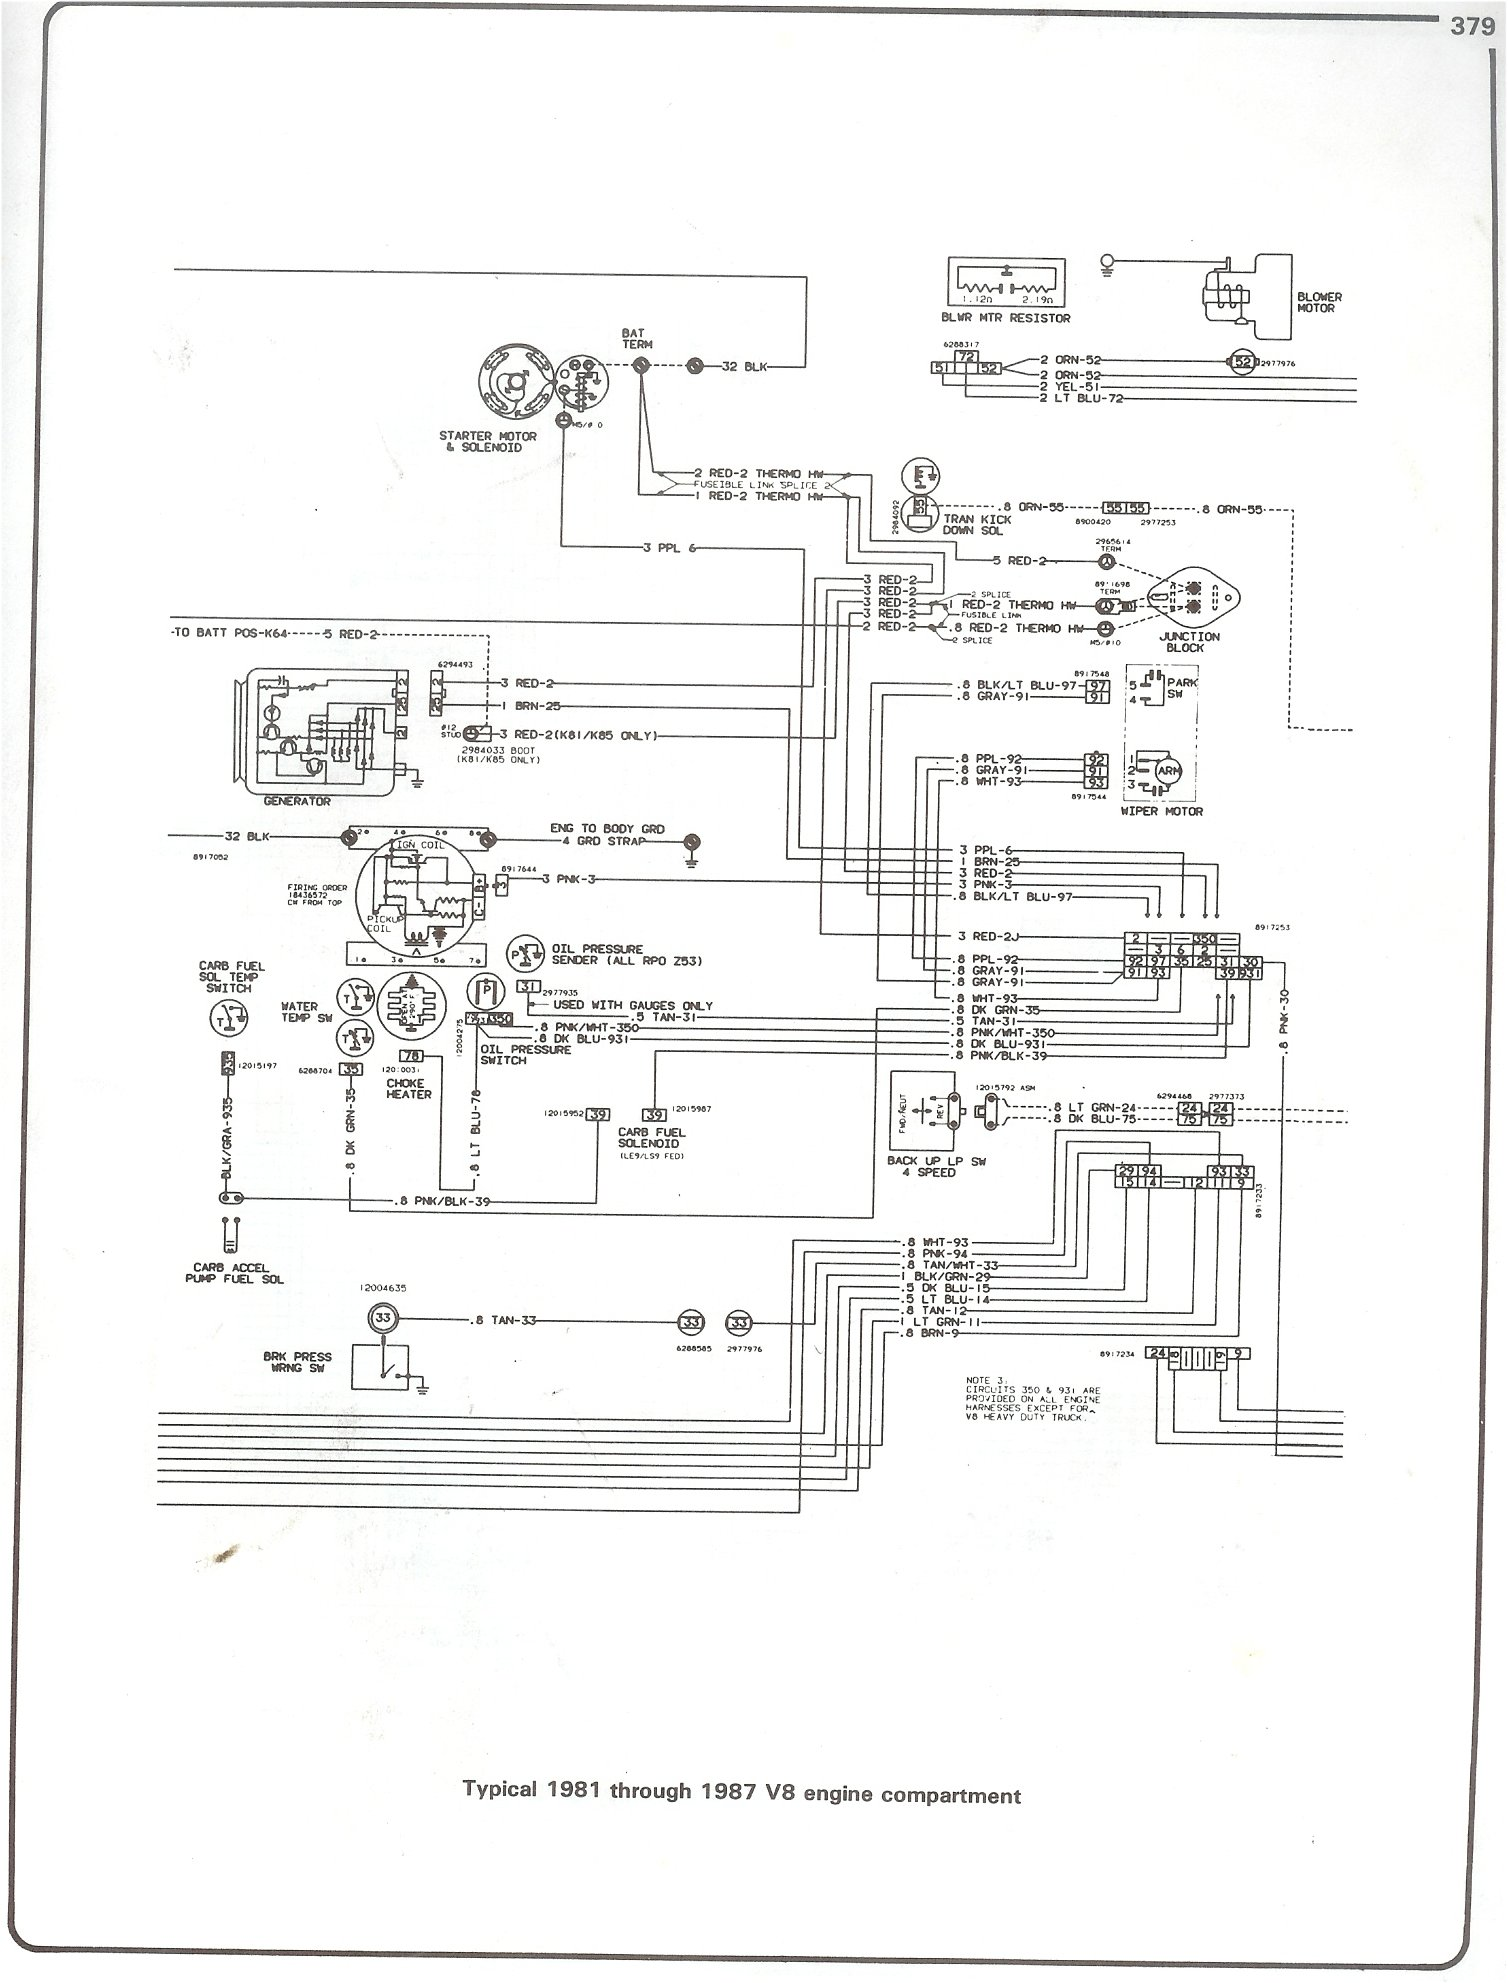 86 K5 Blazer Wiring Diagram Wiring Diagram Schemes 2007 Suburban Wiring  Diagram 86 Suburban Wiring Diagram